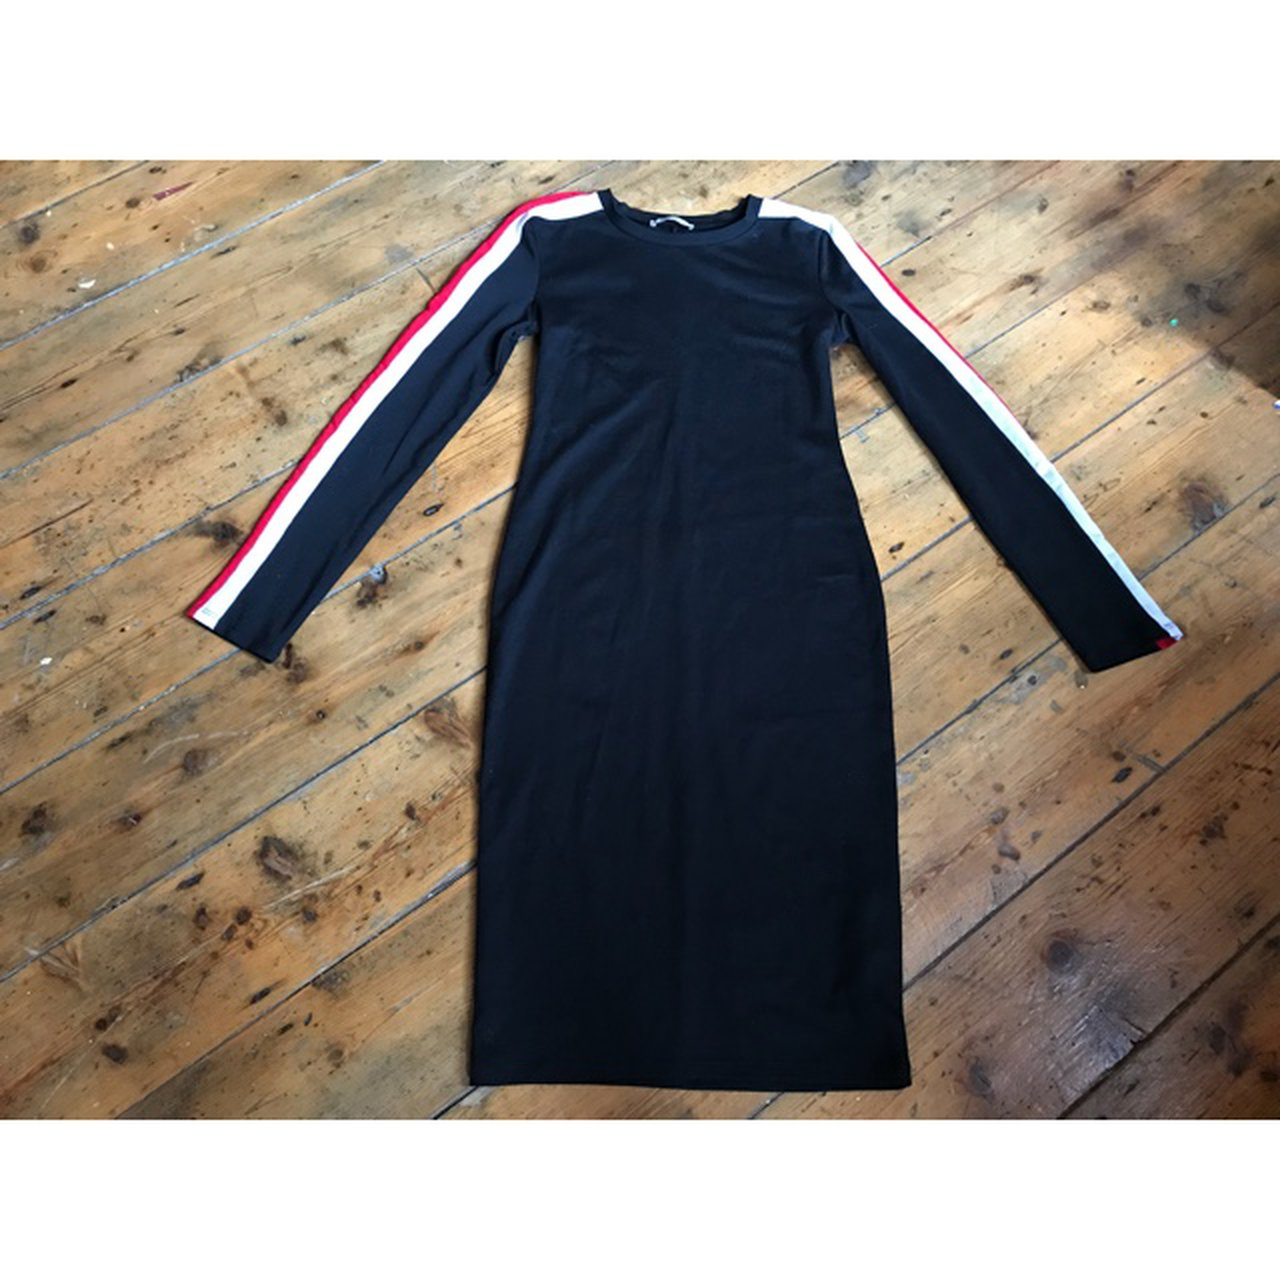 78e638b0bf PRICE DROP 🔽🔽🔽 Black with red and white striped sleeve S - Depop